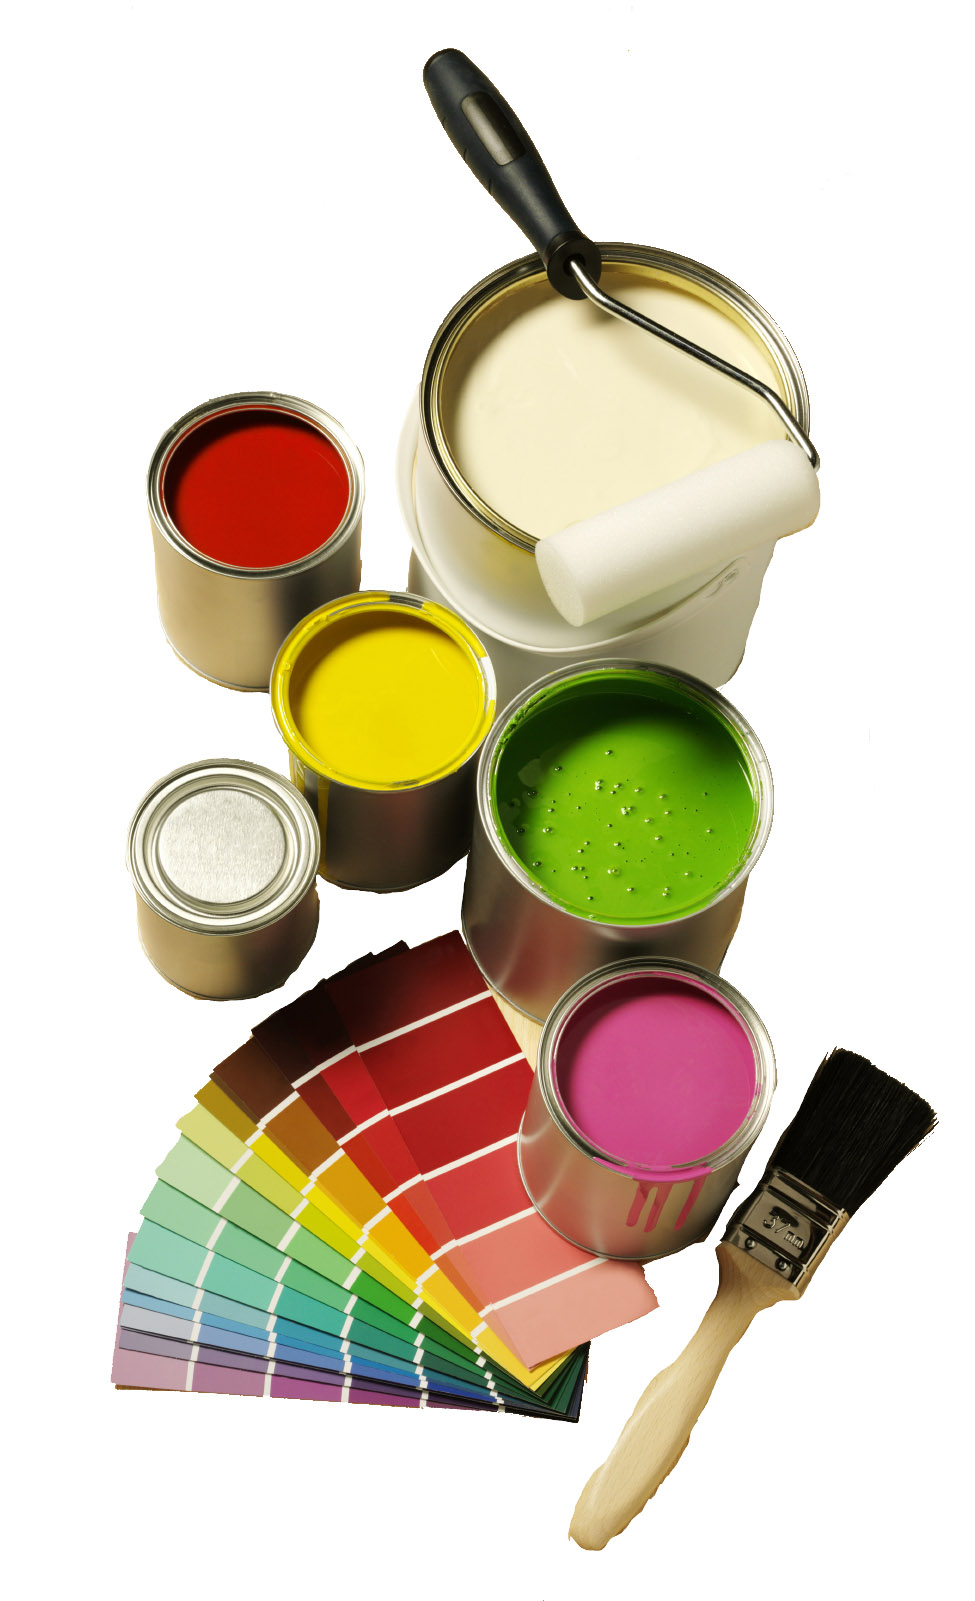 paint cans, swatches, brushes in bright colors